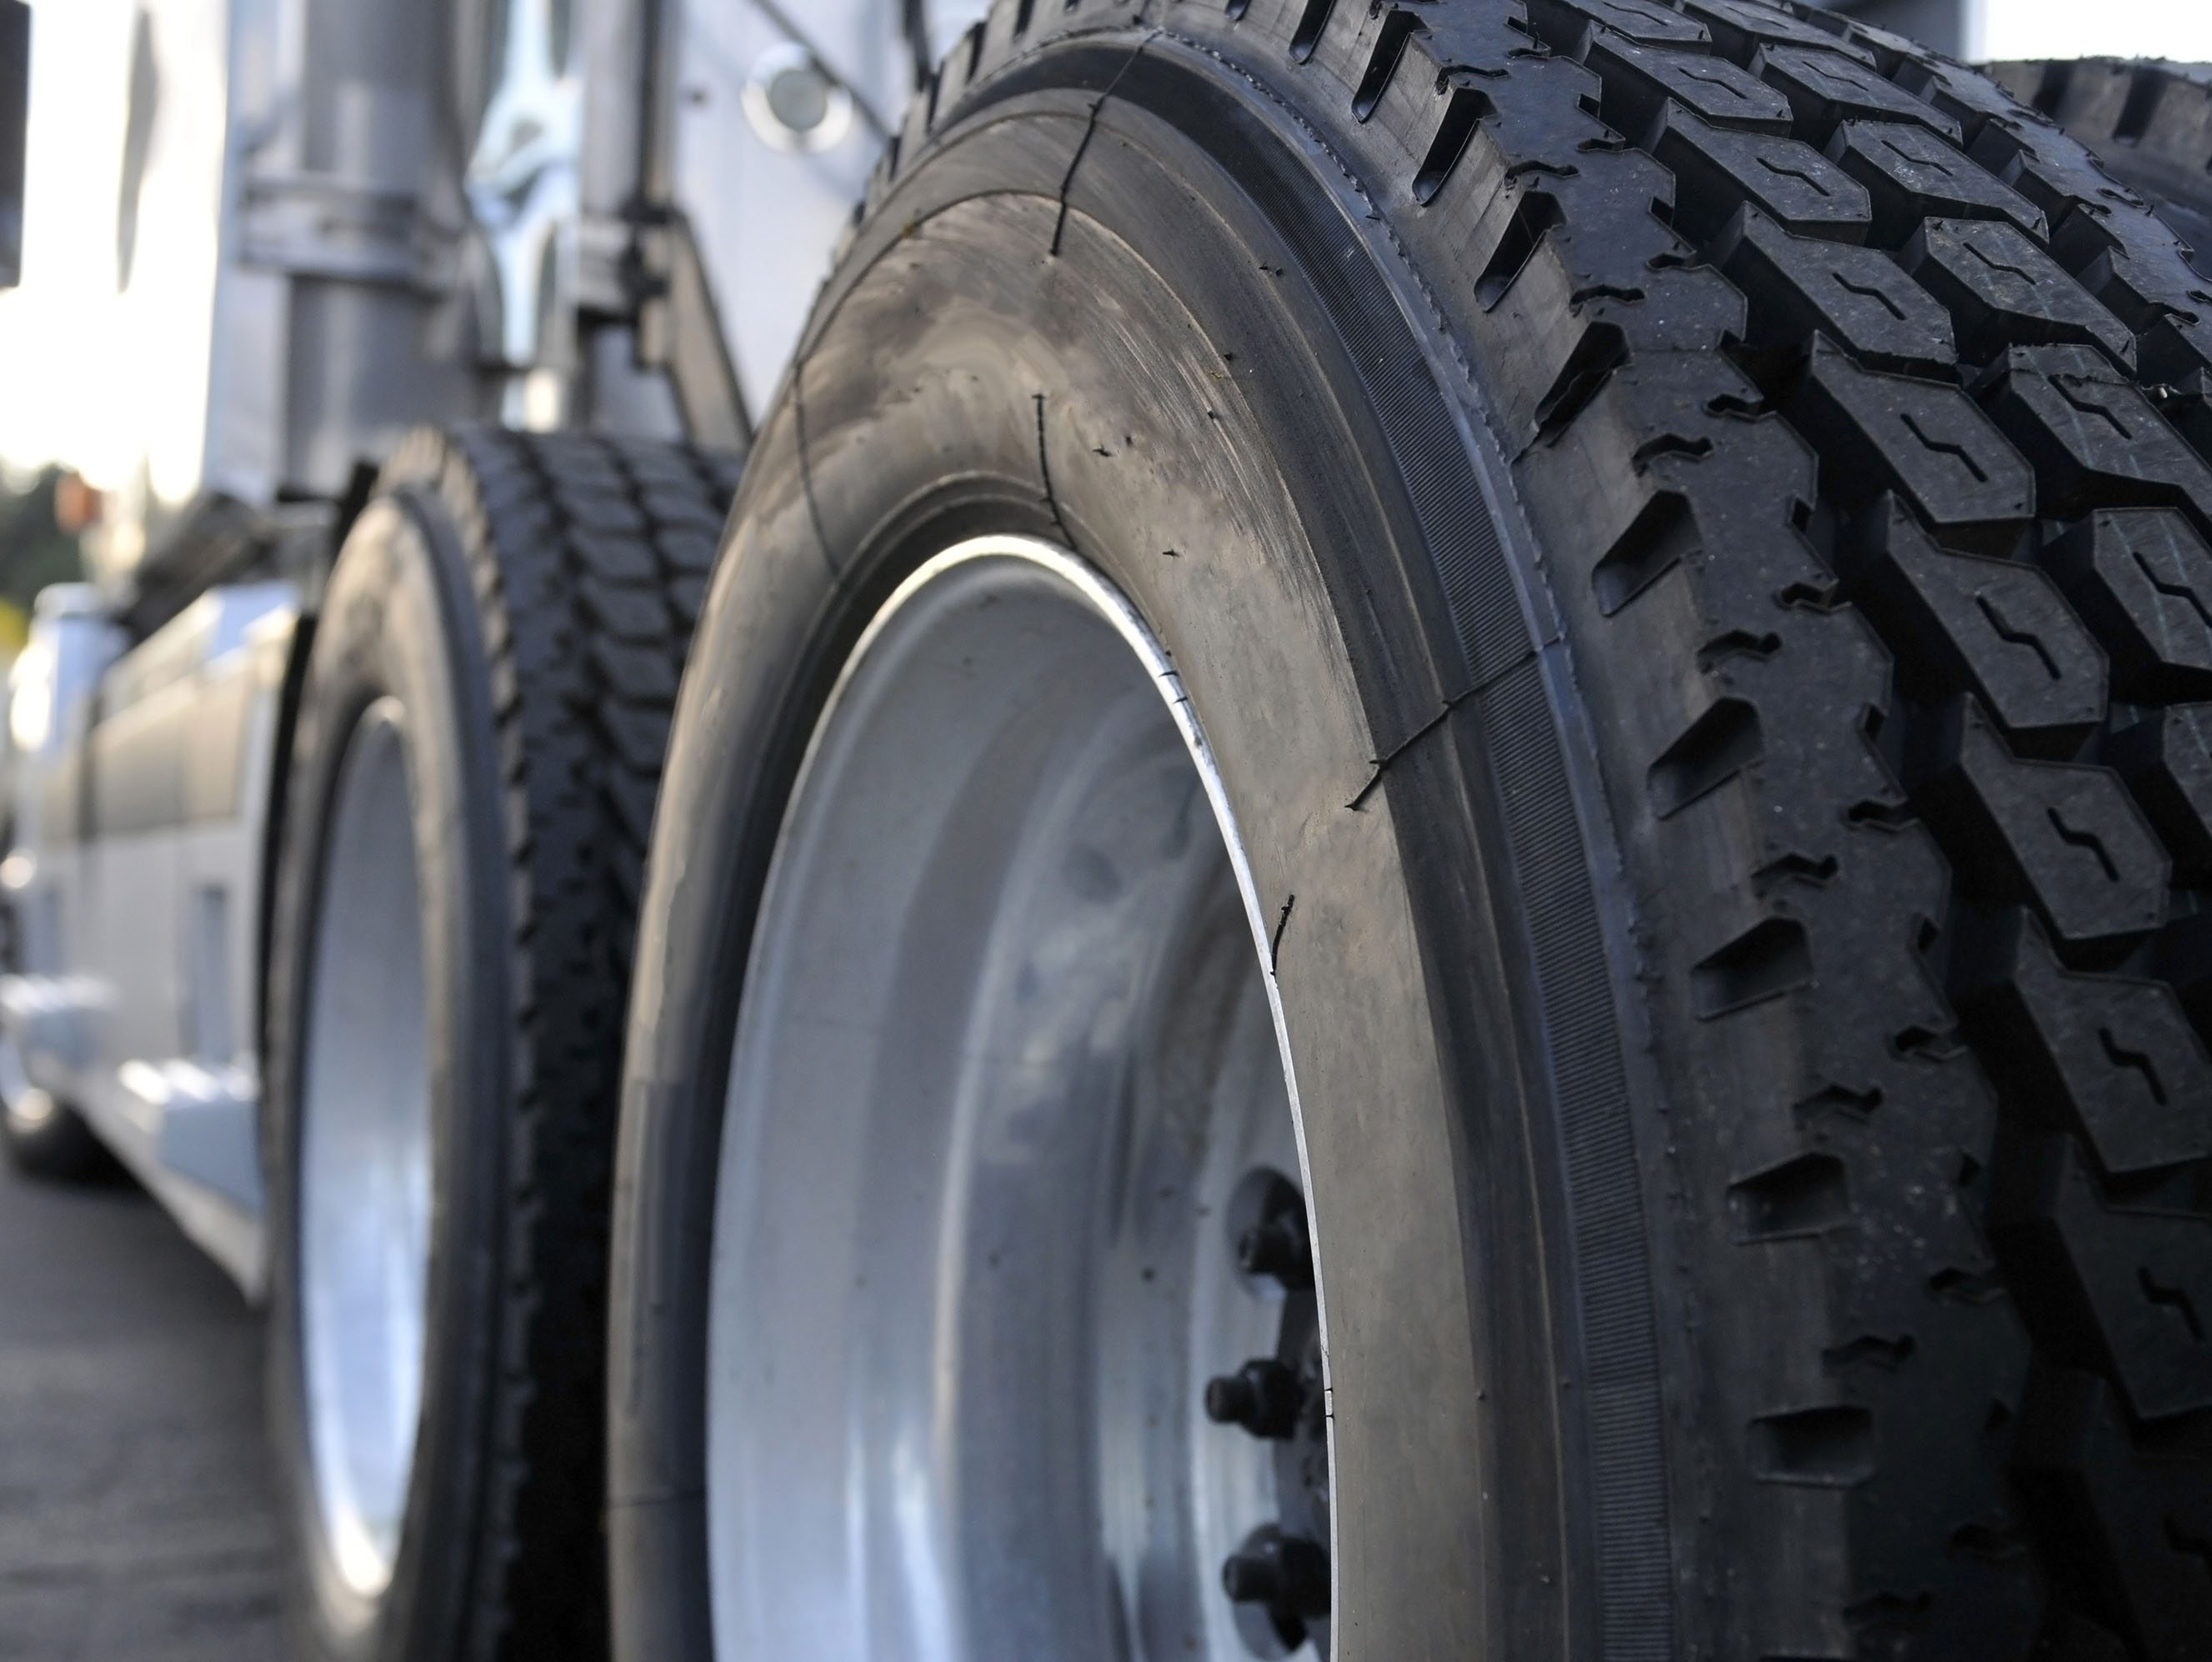 The tires and rims of big rig semi trucks are given great importance since trucks are the main means of transporting goods. All wheels parts or treads are made in accordance with standards